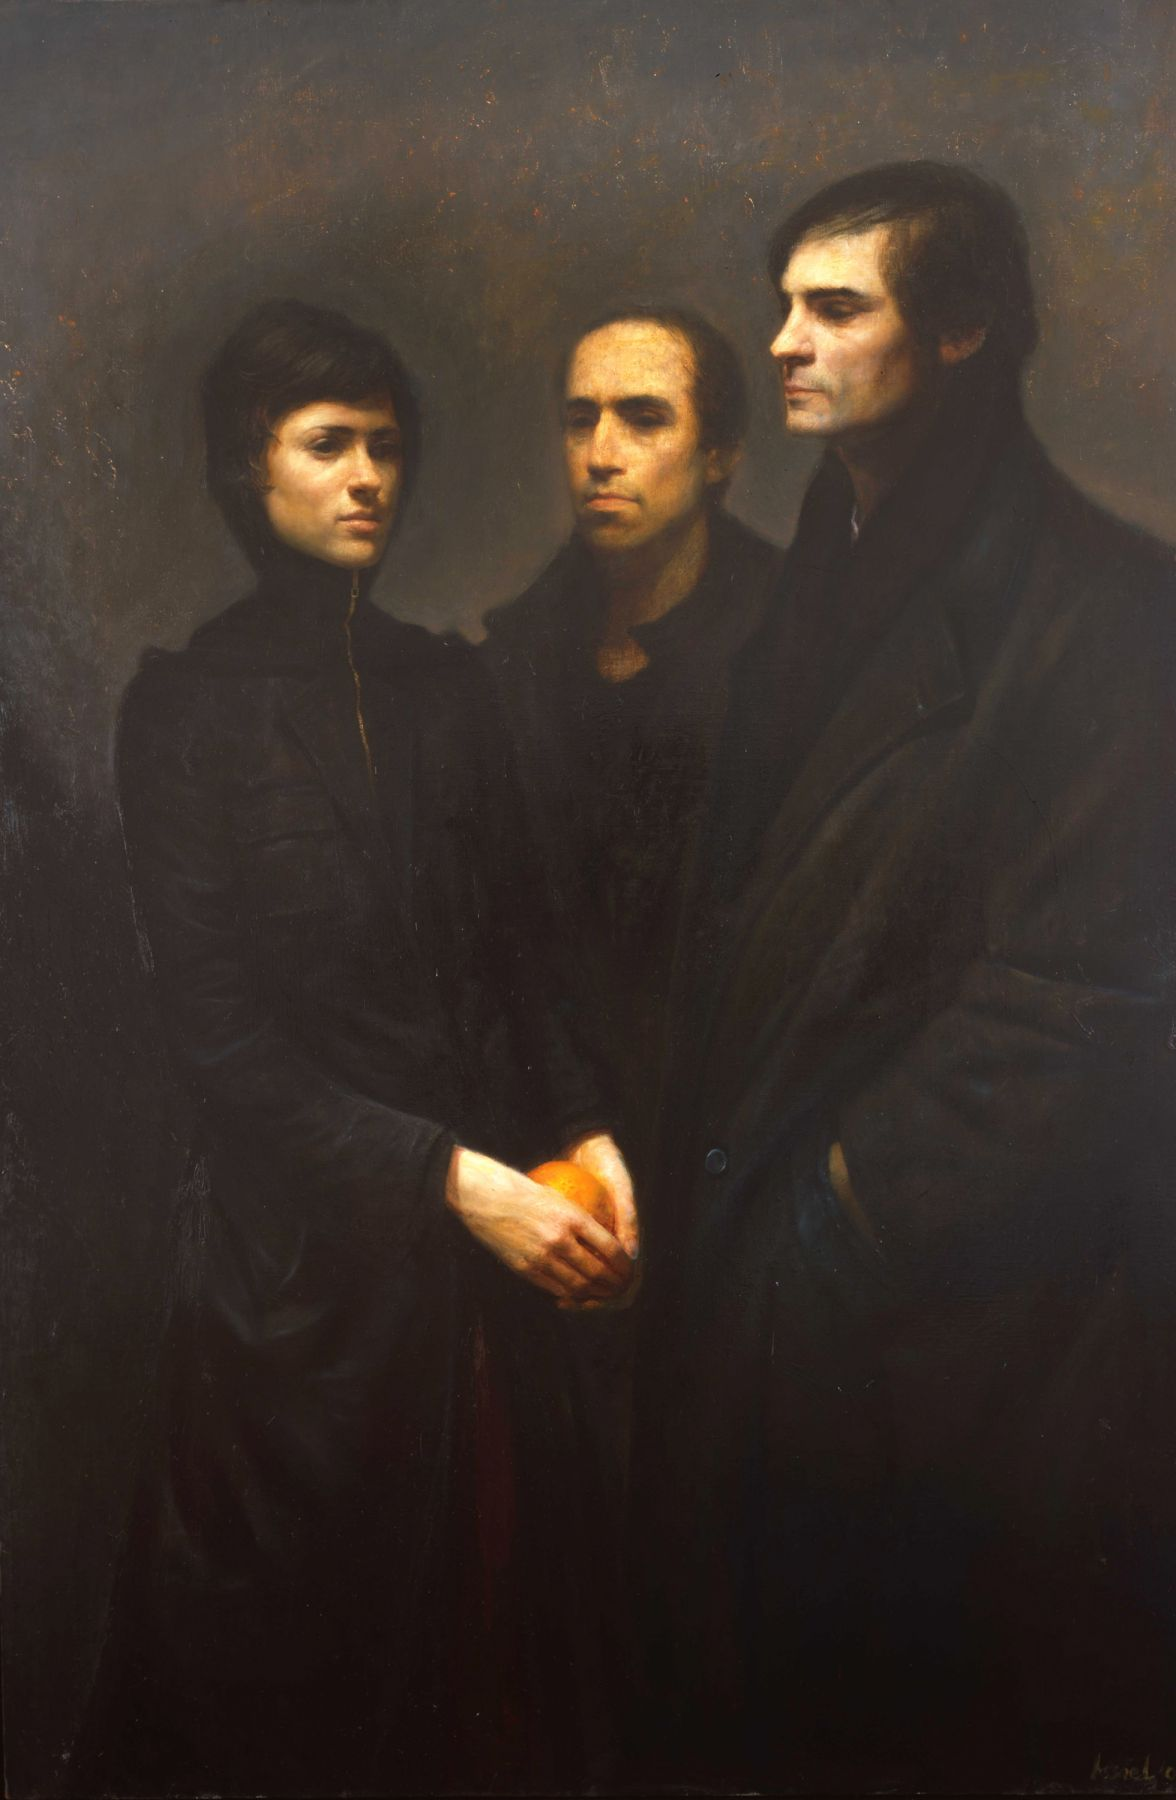 Steven Assael, Alex, Nathan, and Morgan, 2008, oil on canvas, 71 x 48 inches